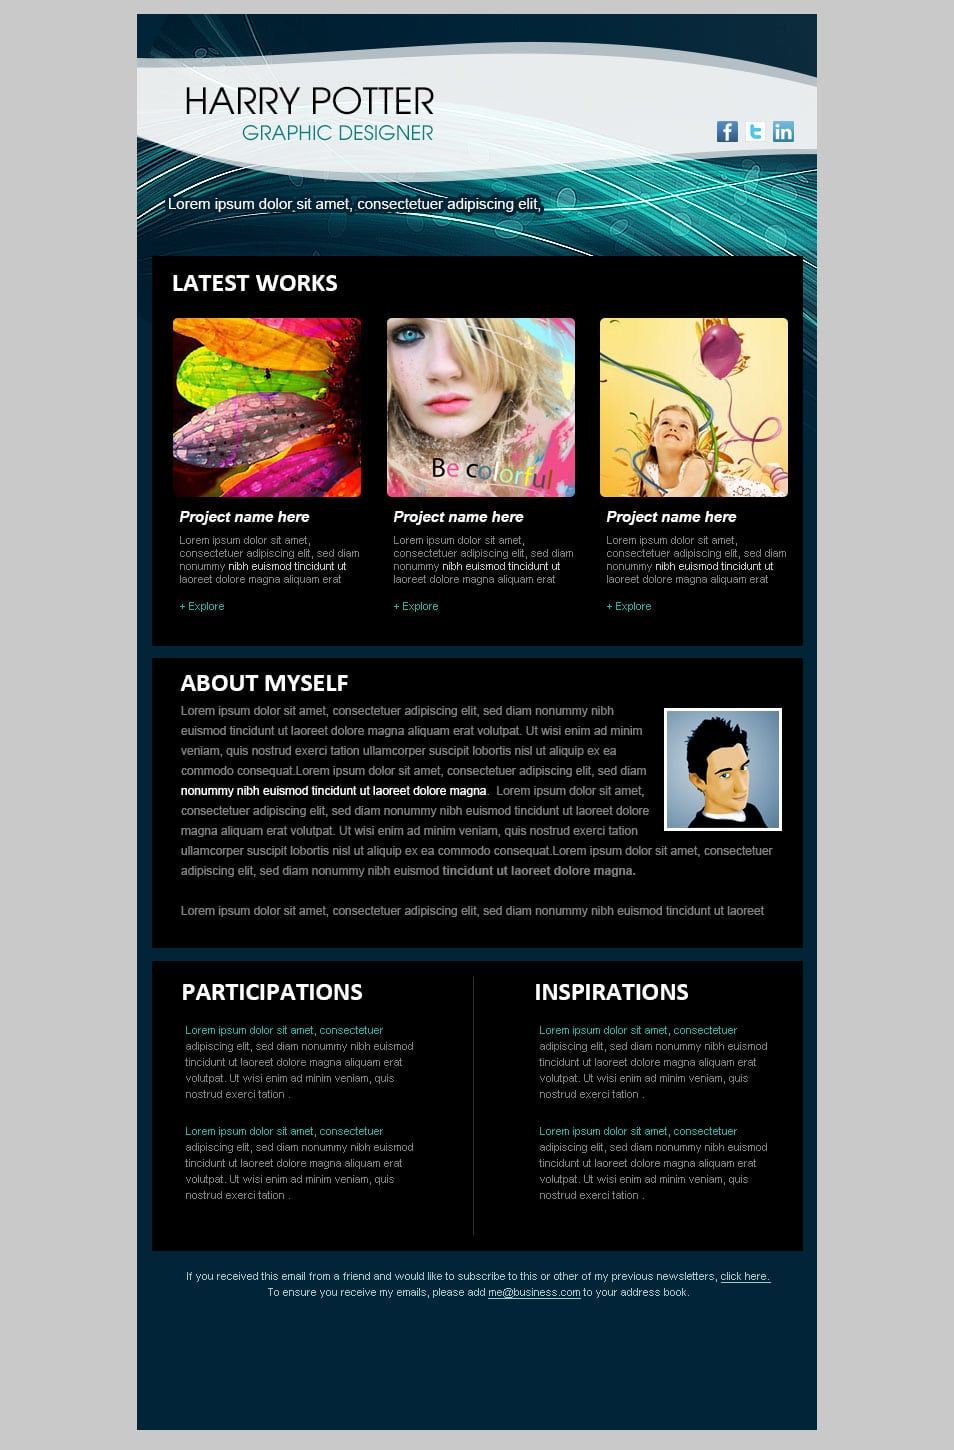 this email newsletter is designed for a graphic artist or designer 2TopqUxQ